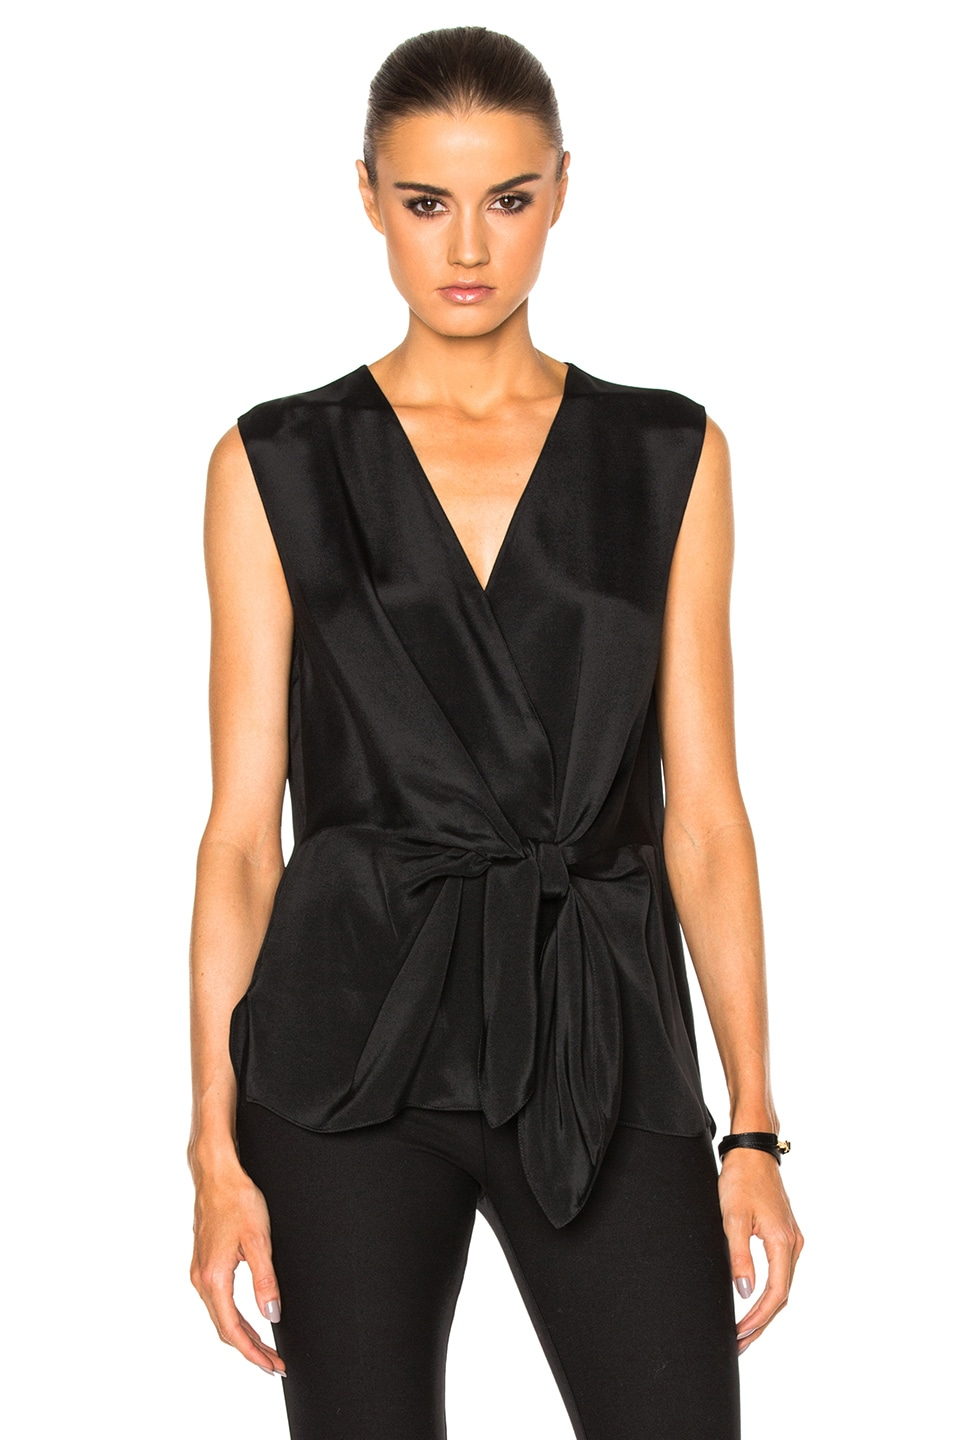 Image 1 of 3.1 phillip lim Sleeveless Front Knot Top in Black